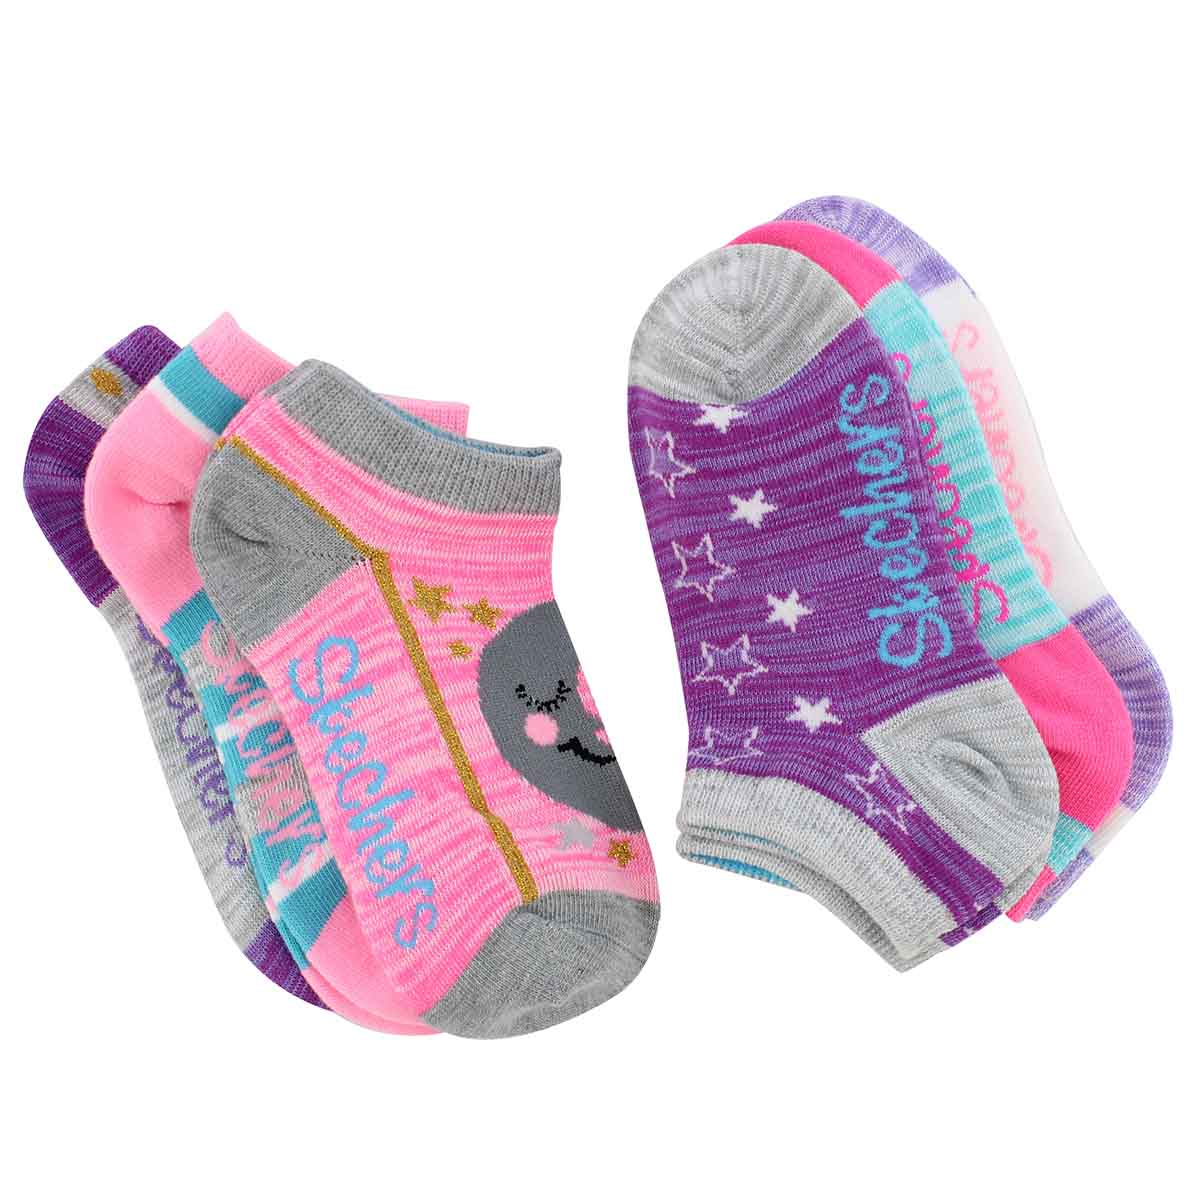 Grls Non Terry ppl/pnk mlti low sock 6pk